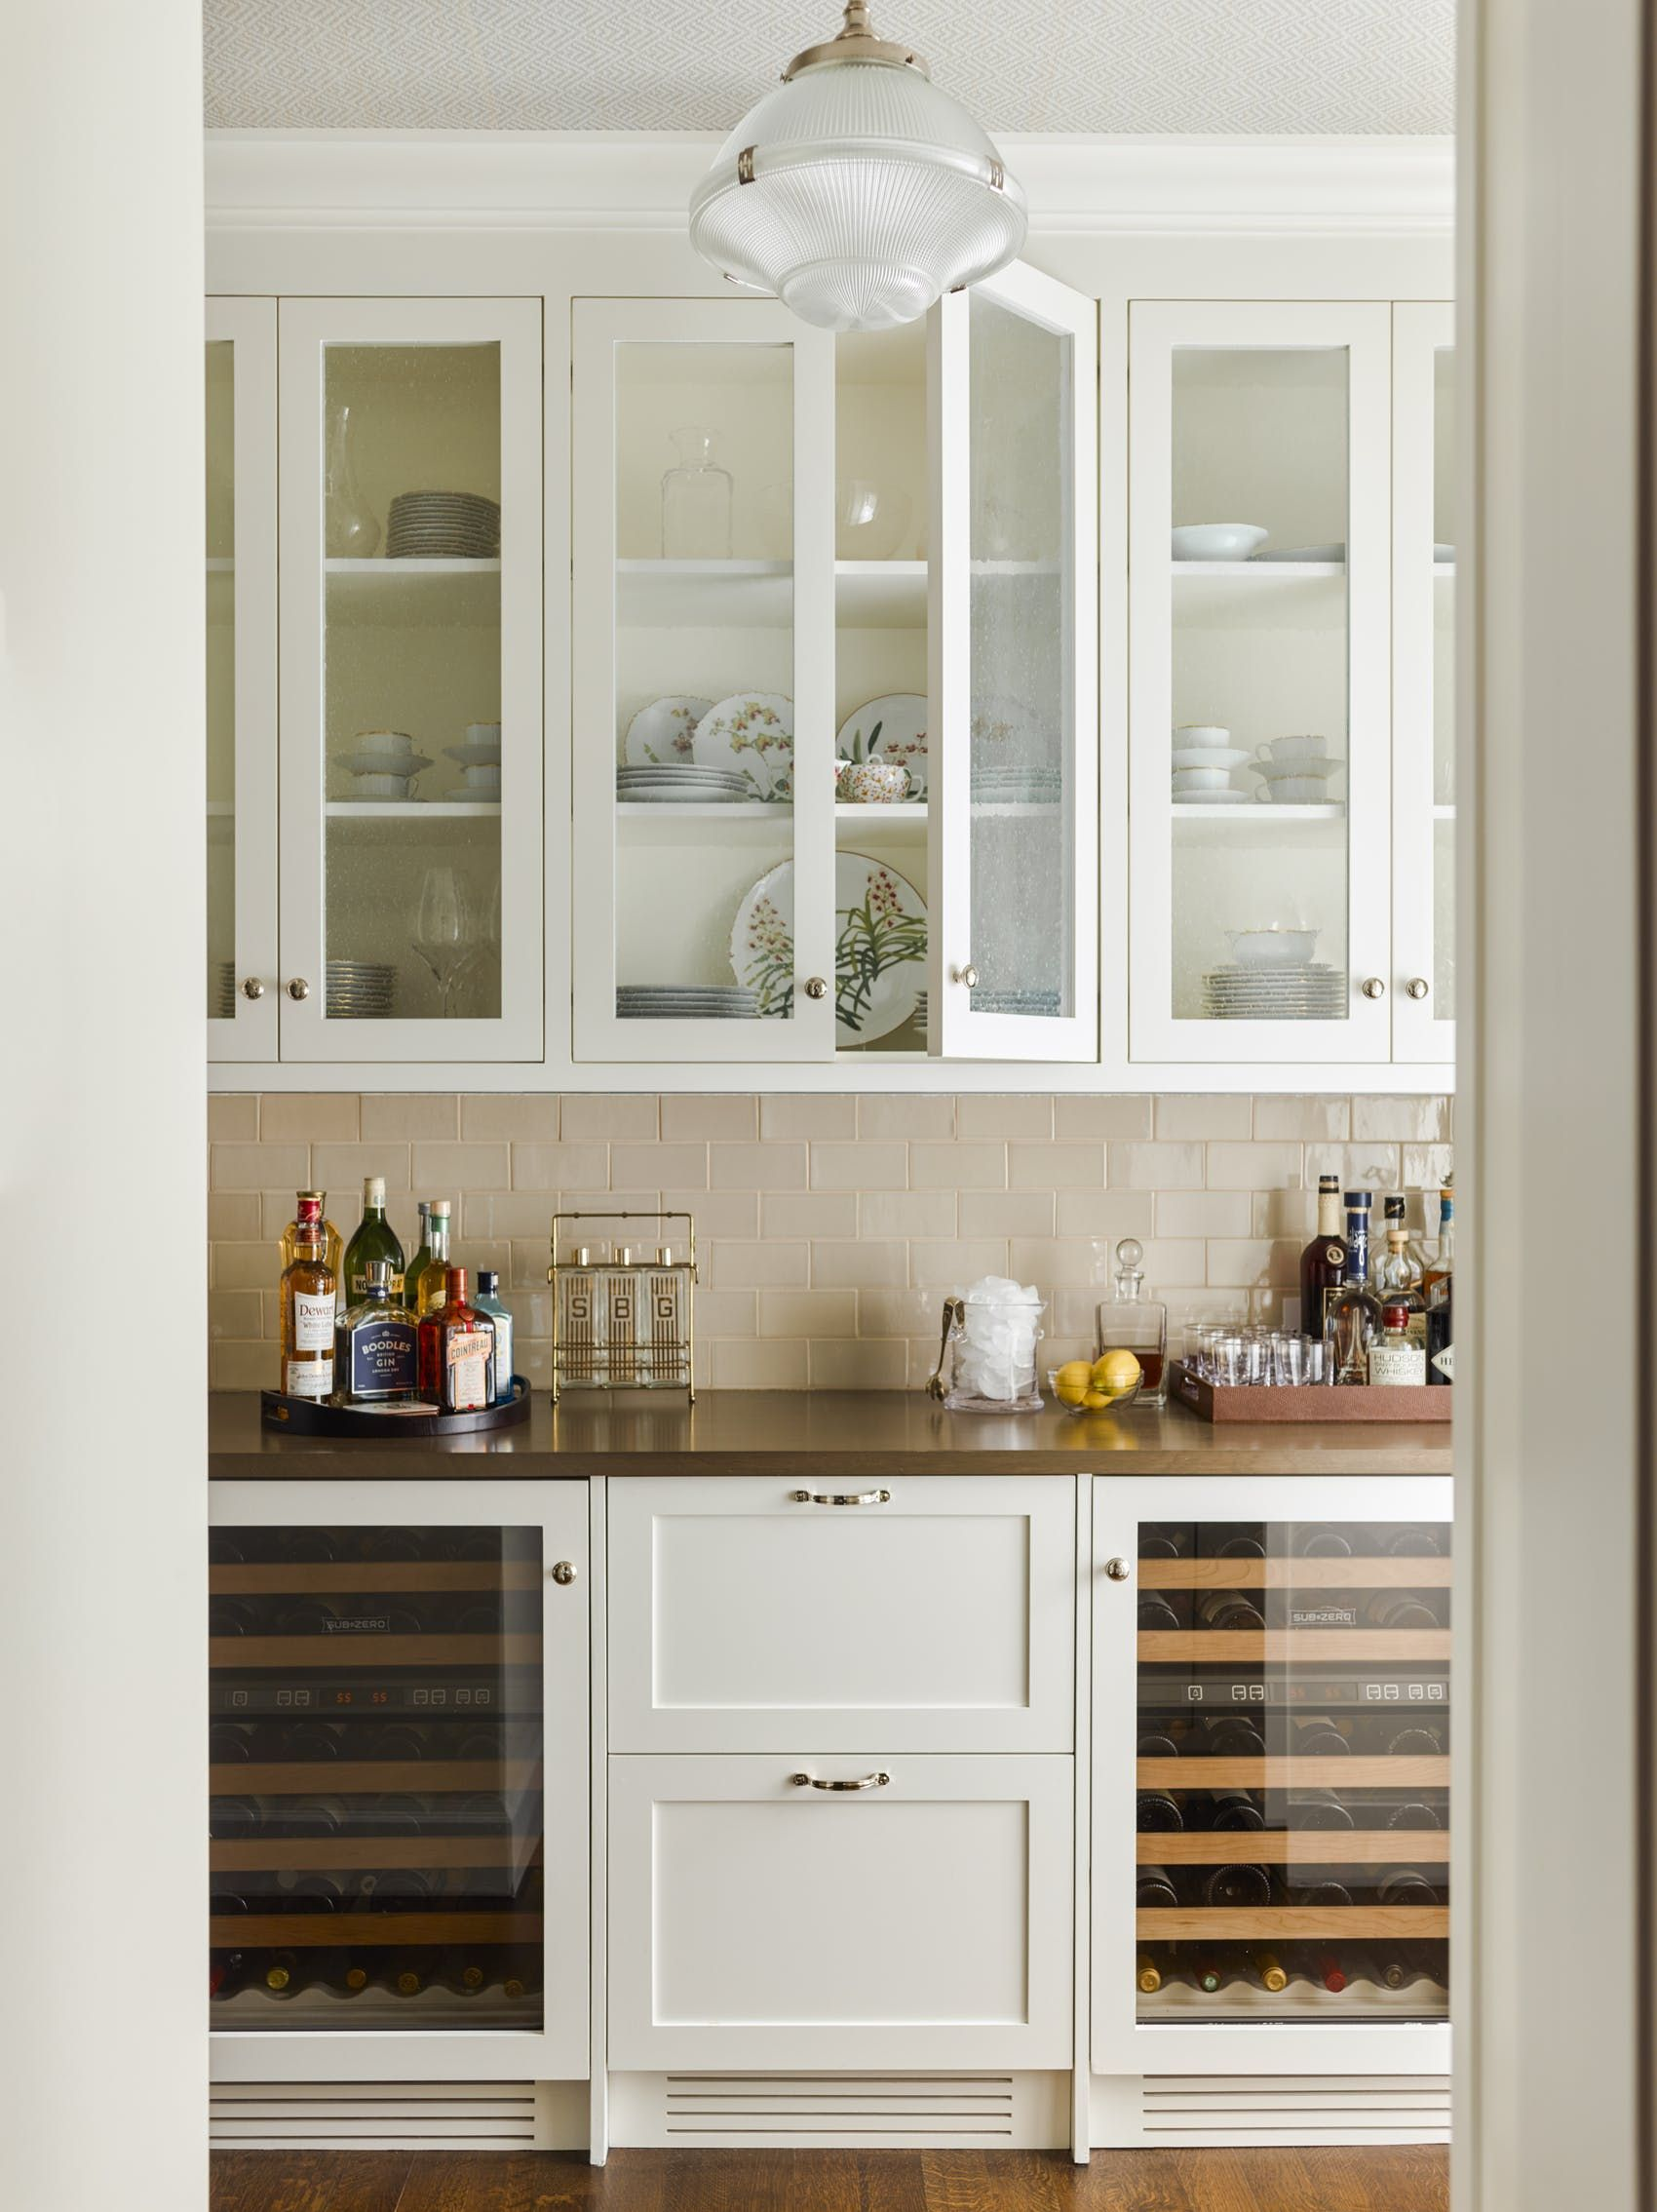 how to add a pantry your kitchen 4 piece stainless steel appliance package 45 charming butler s ideas what is best pantries